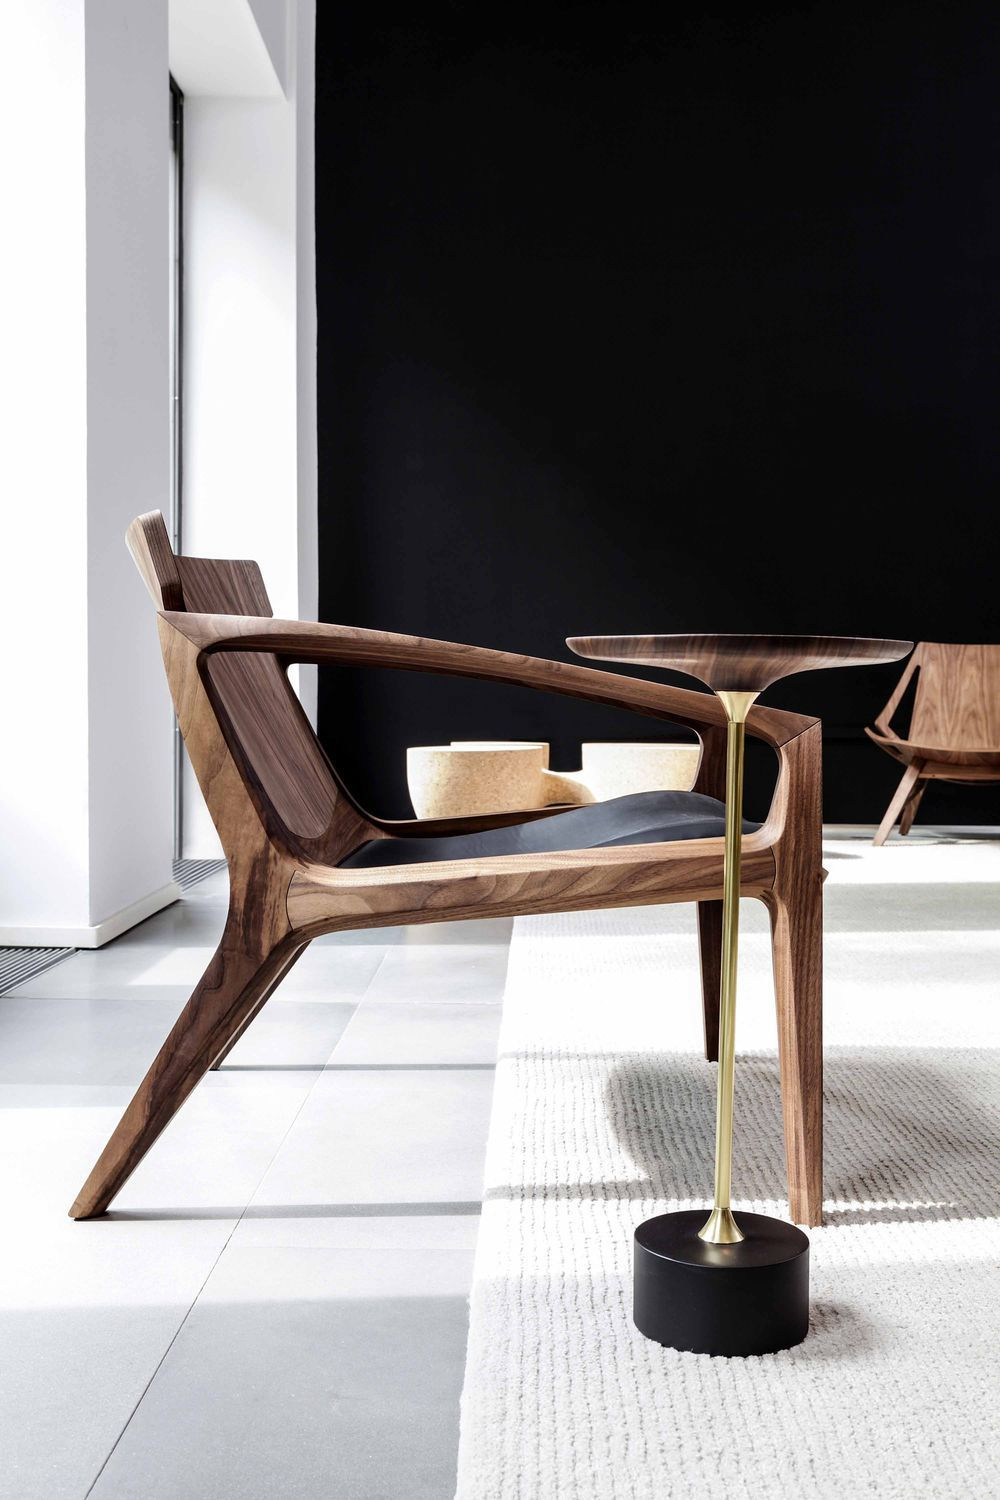 Contemporary armchair / in wood - LINNA by Jader Almeida - SOLLOS & Contemporary armchair / in wood - LINNA by Jader Almeida - SOLLOS ...